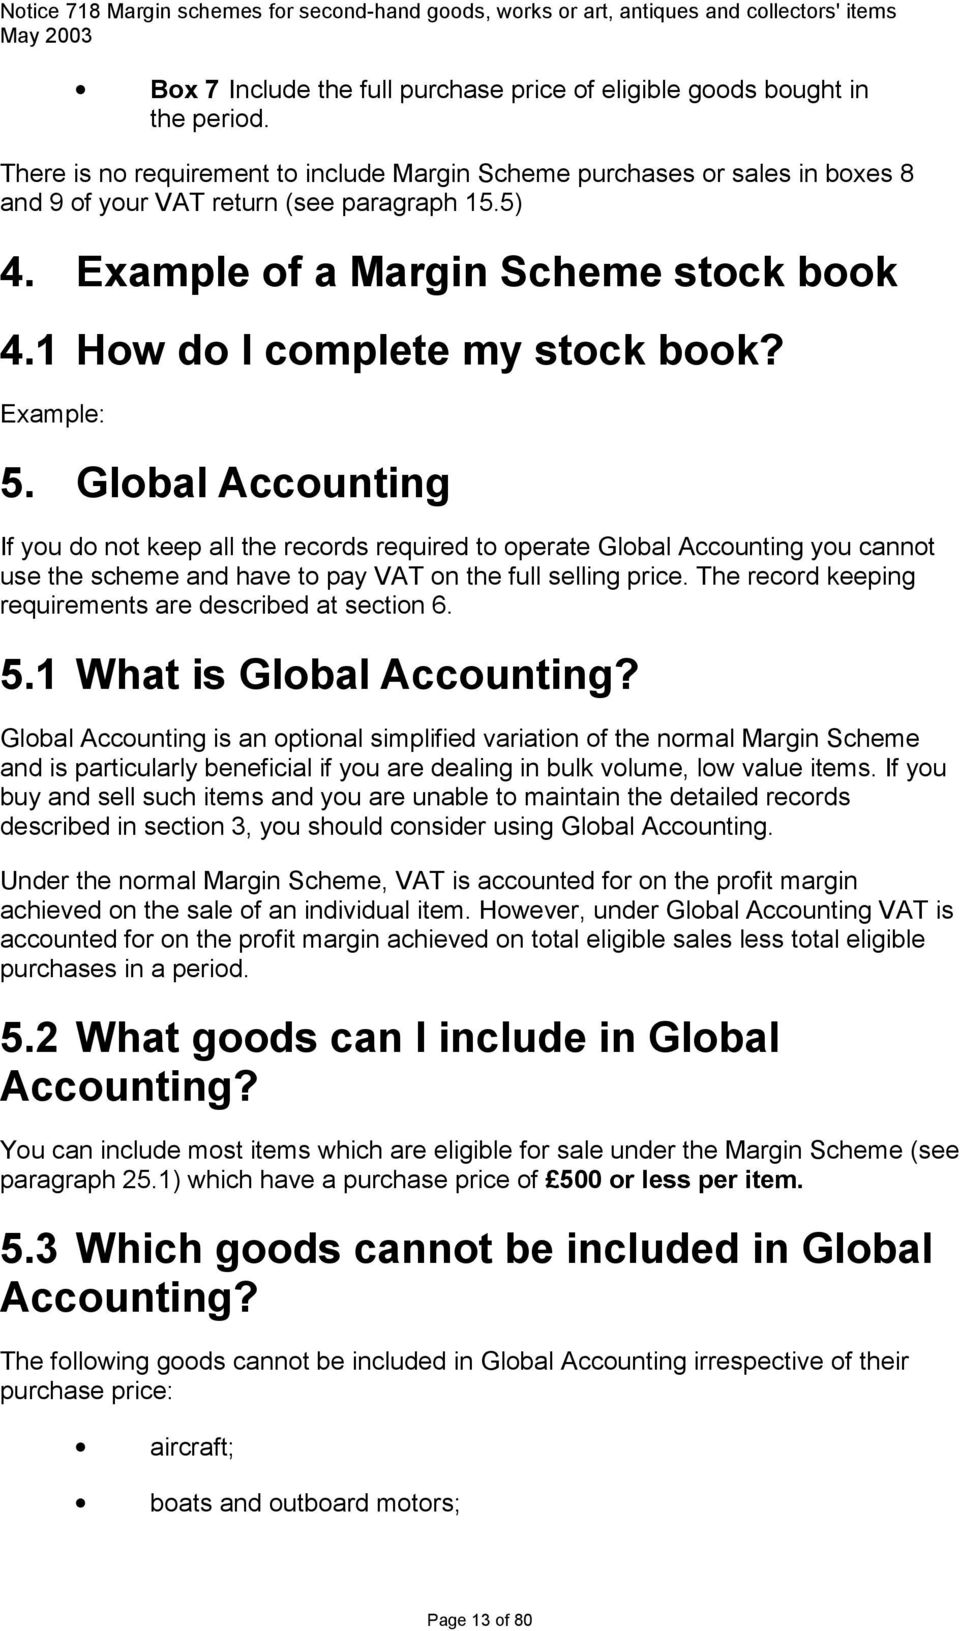 Global Accounting If you do not keep all the records required to operate Global Accounting you cannot use the scheme and have to pay VAT on the full selling price.